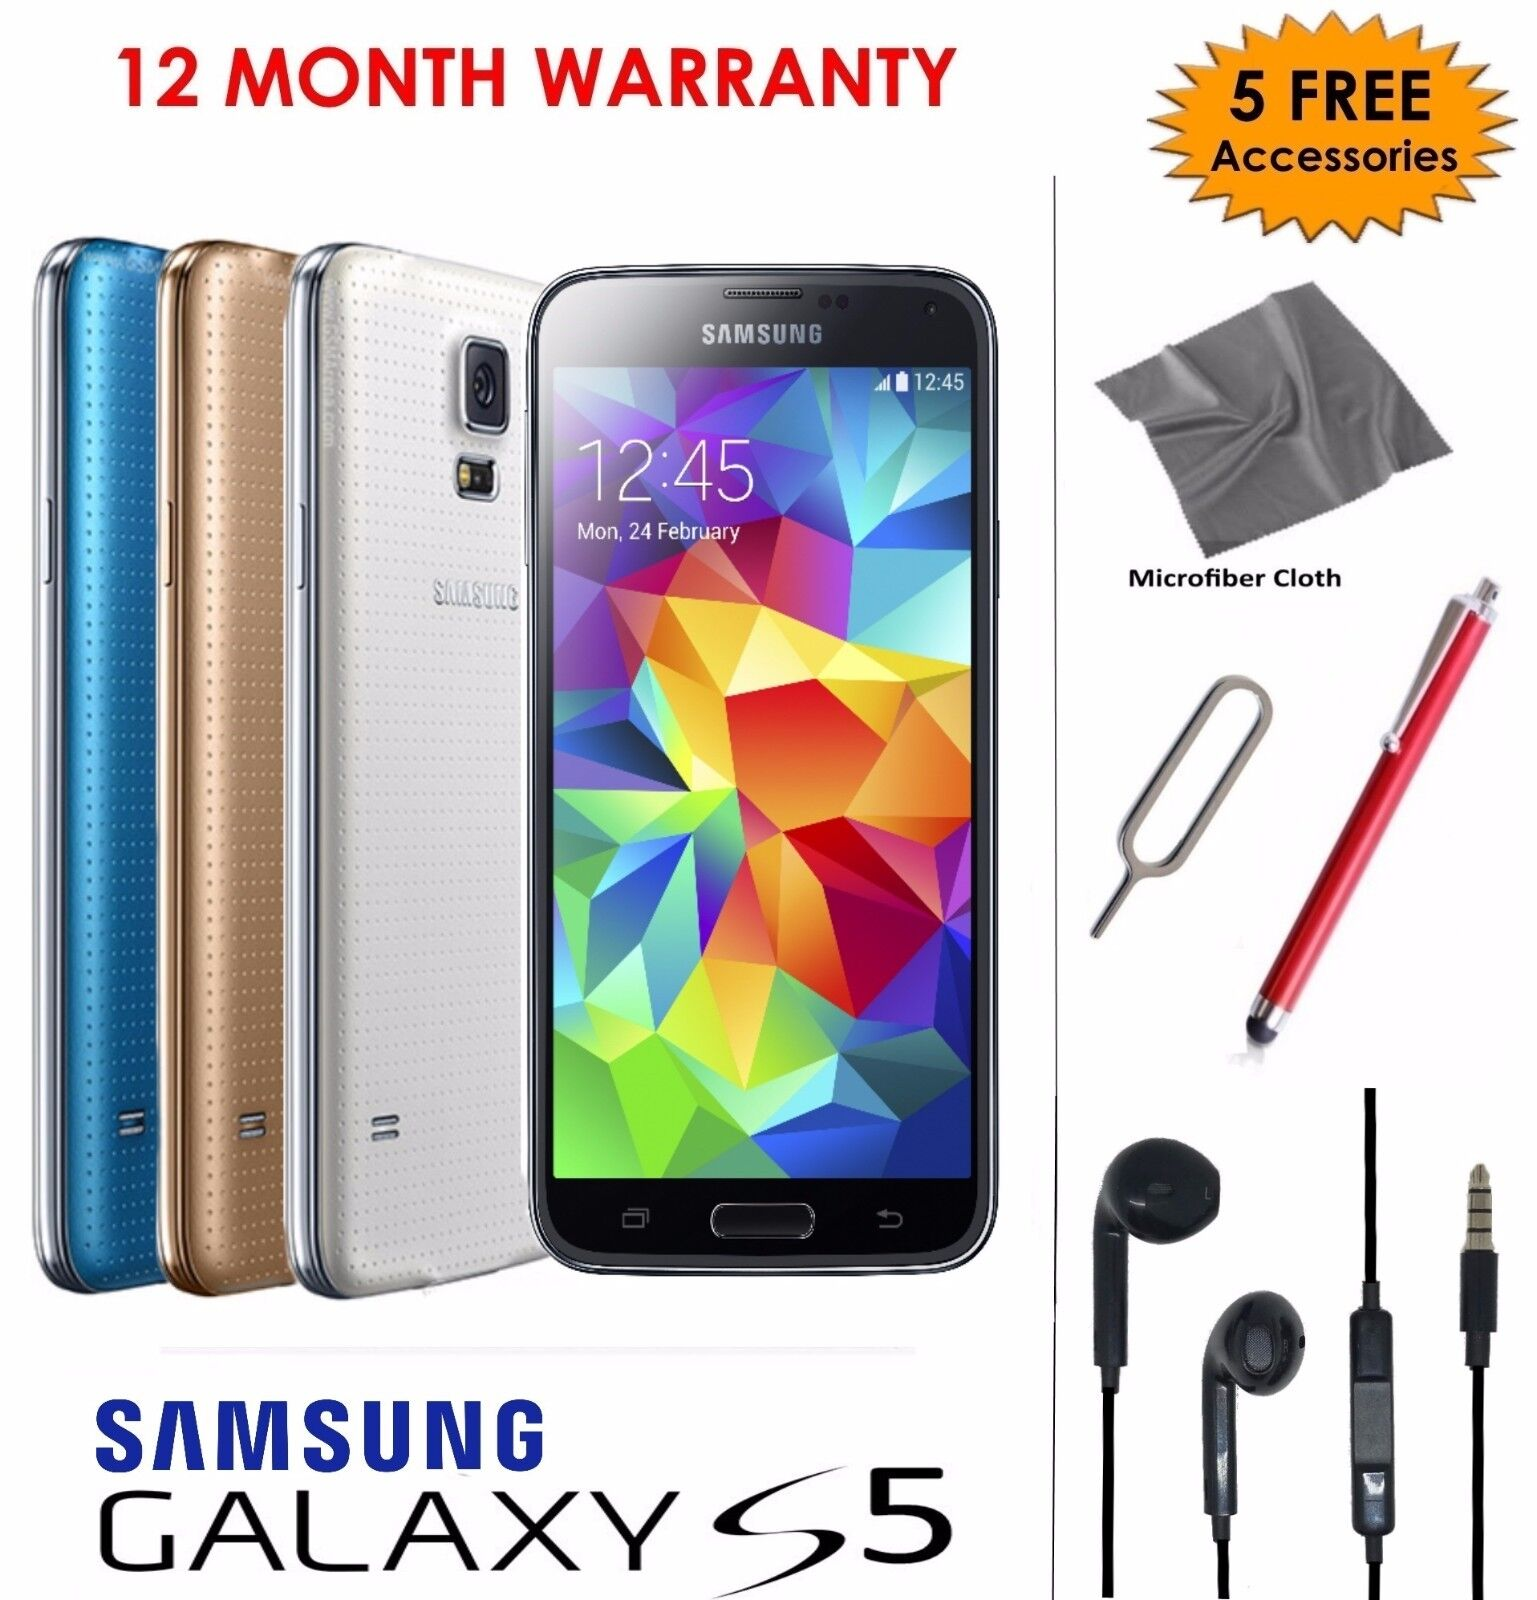 SELLER REFURBISHED SAMSUNG GALAXY S5 -16GB  ALL COLOURS - SMARTPHONE - UNLOCKED TO ALL NETWORKS